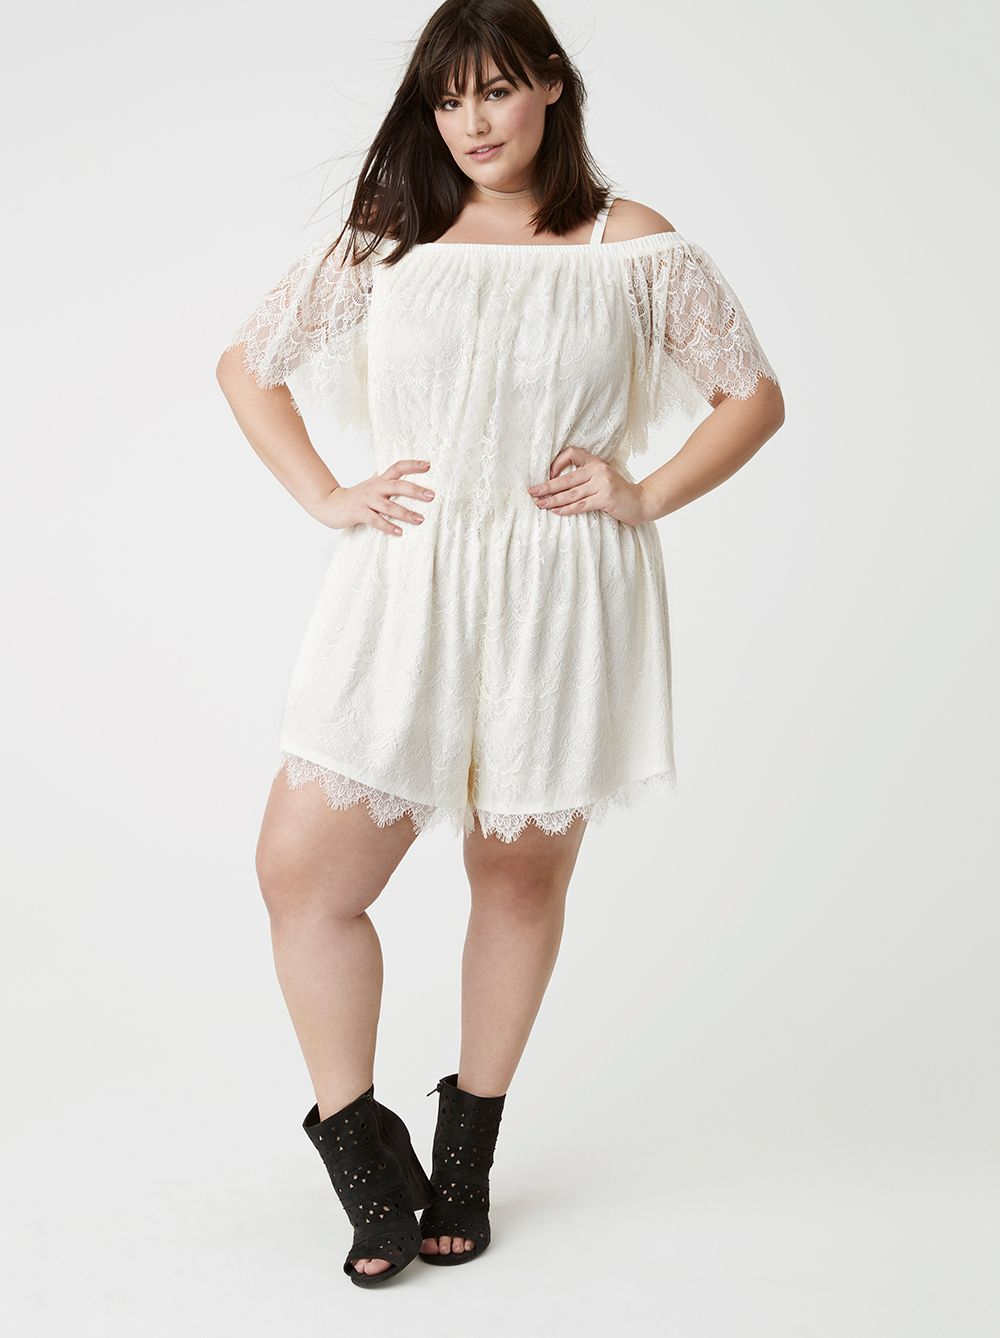 Dress size 24 torrid dress 24 torrid black and white draped v neck - Maria Gimena Is A 24 Year Old Uruguayan Born Model That Is About